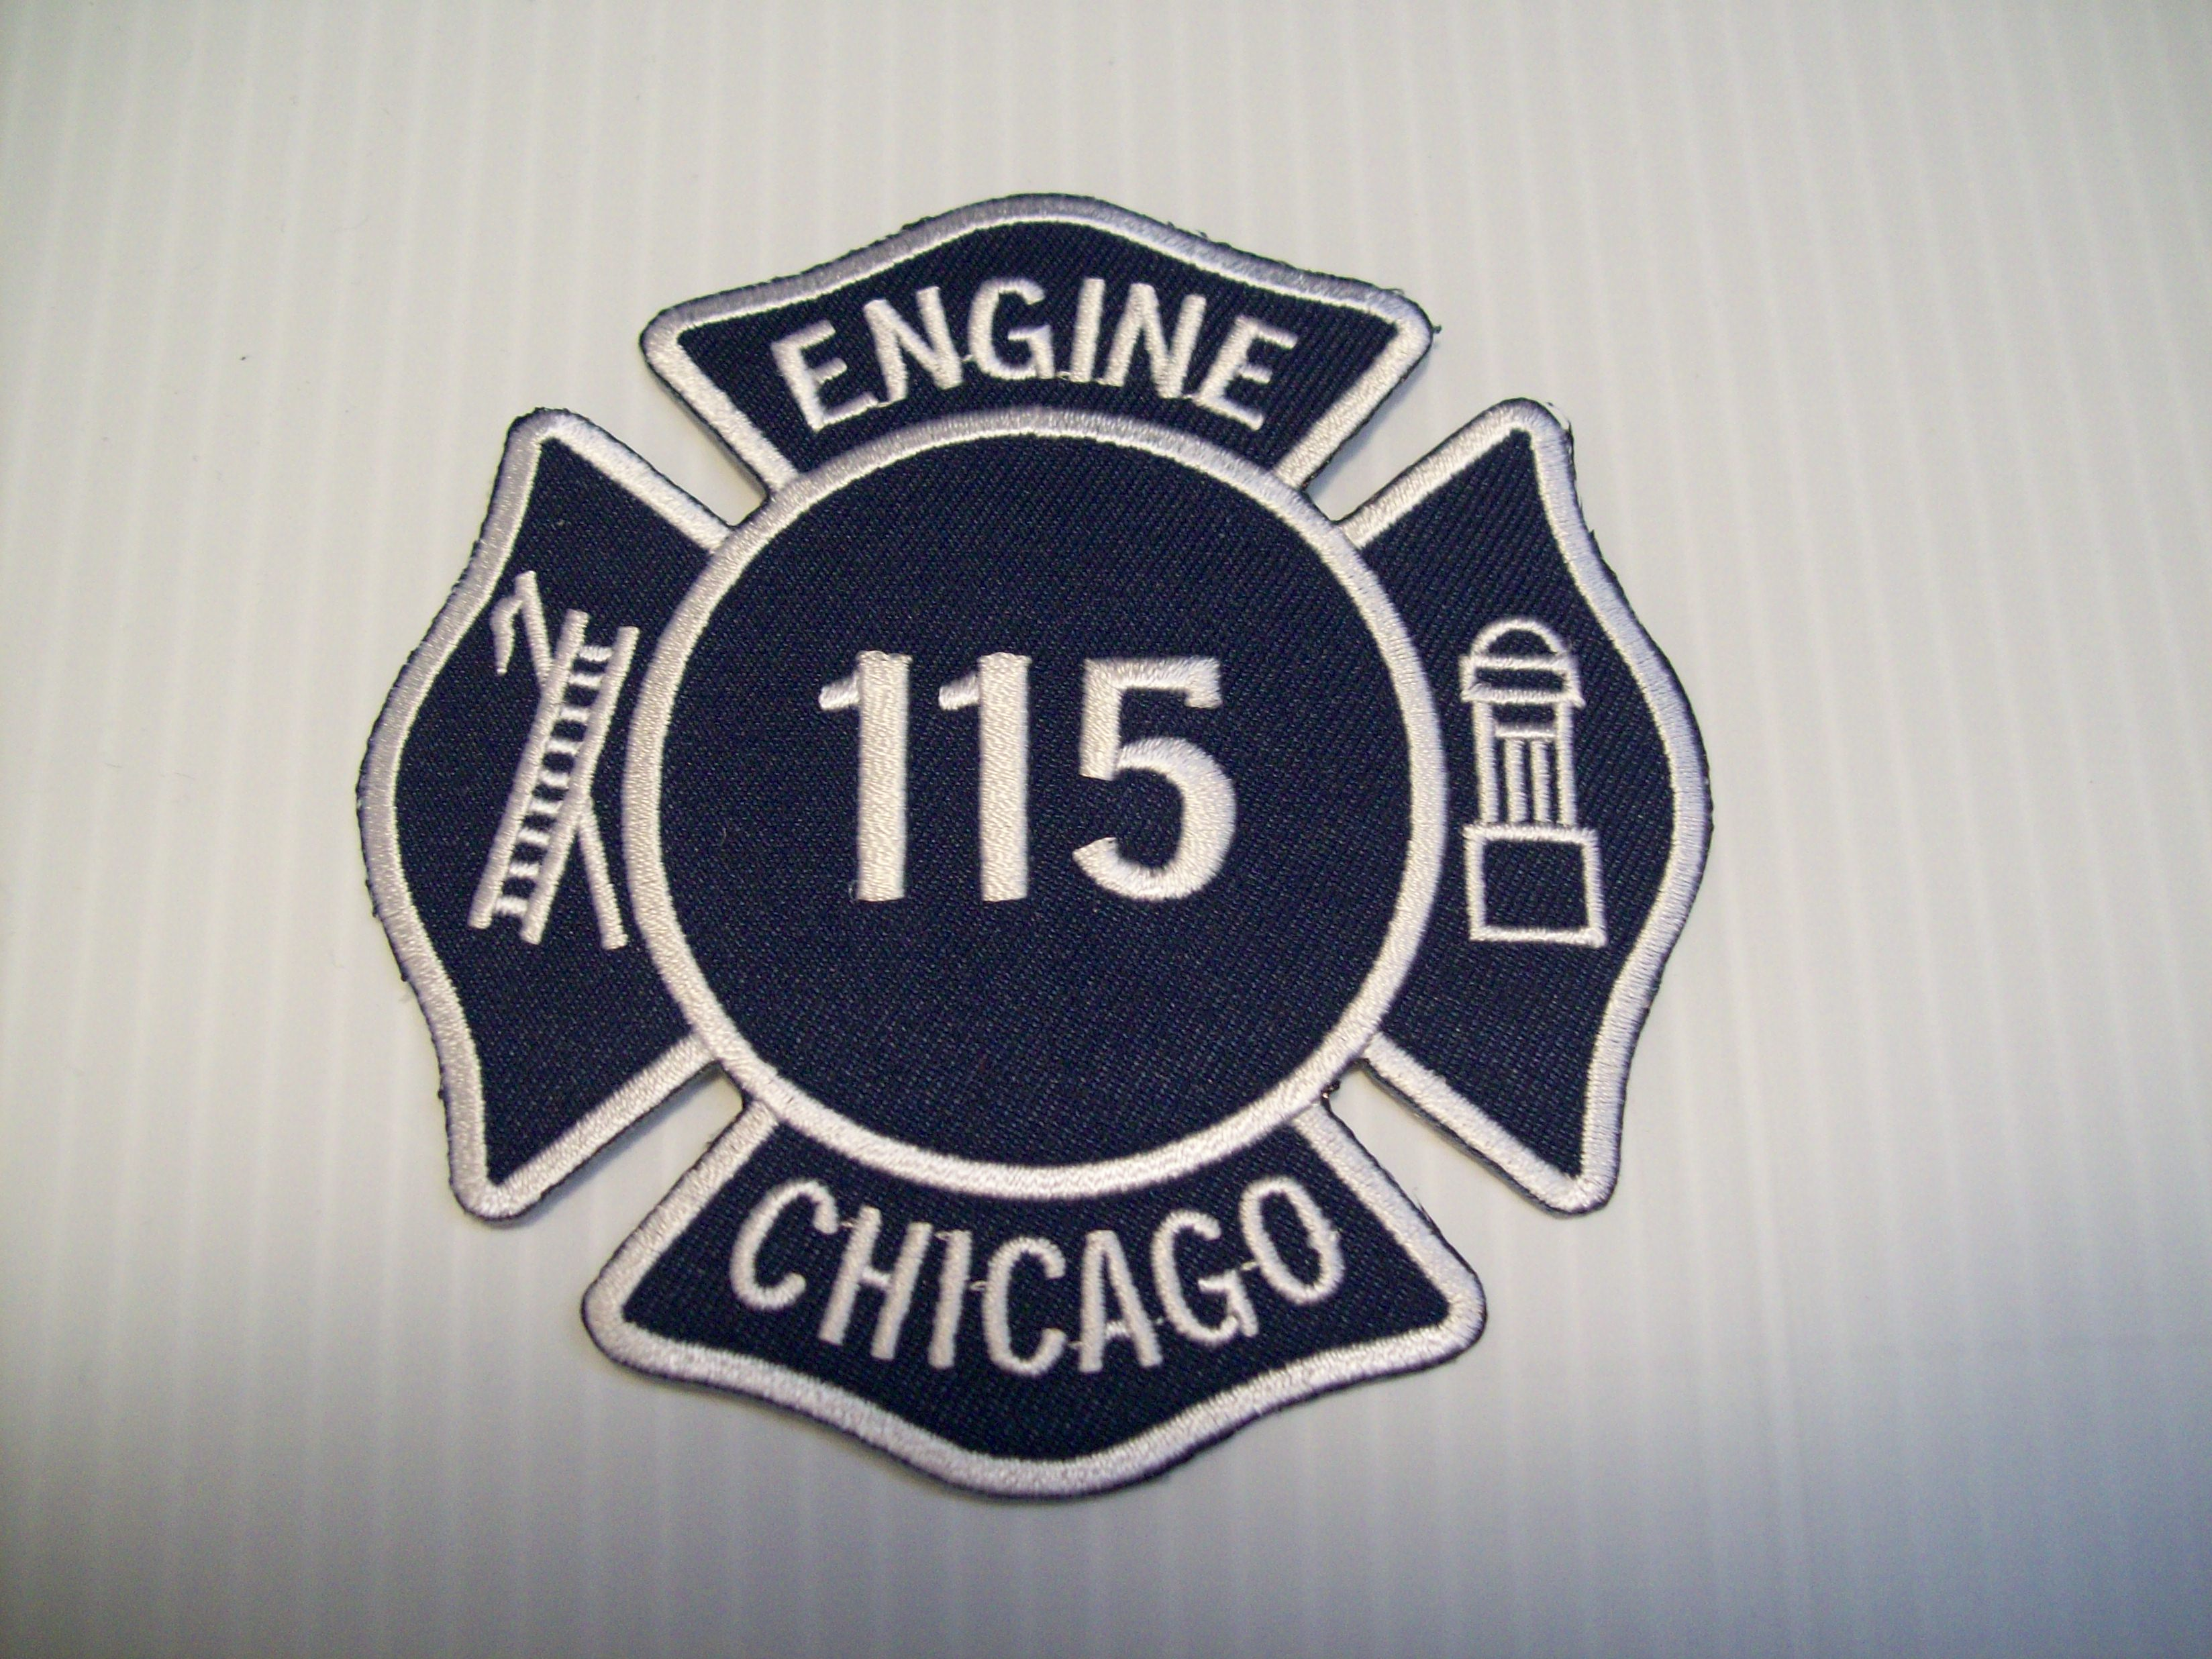 Chicago fire department eng 115 shraders goods chicago fire department eng 115 biocorpaavc Images